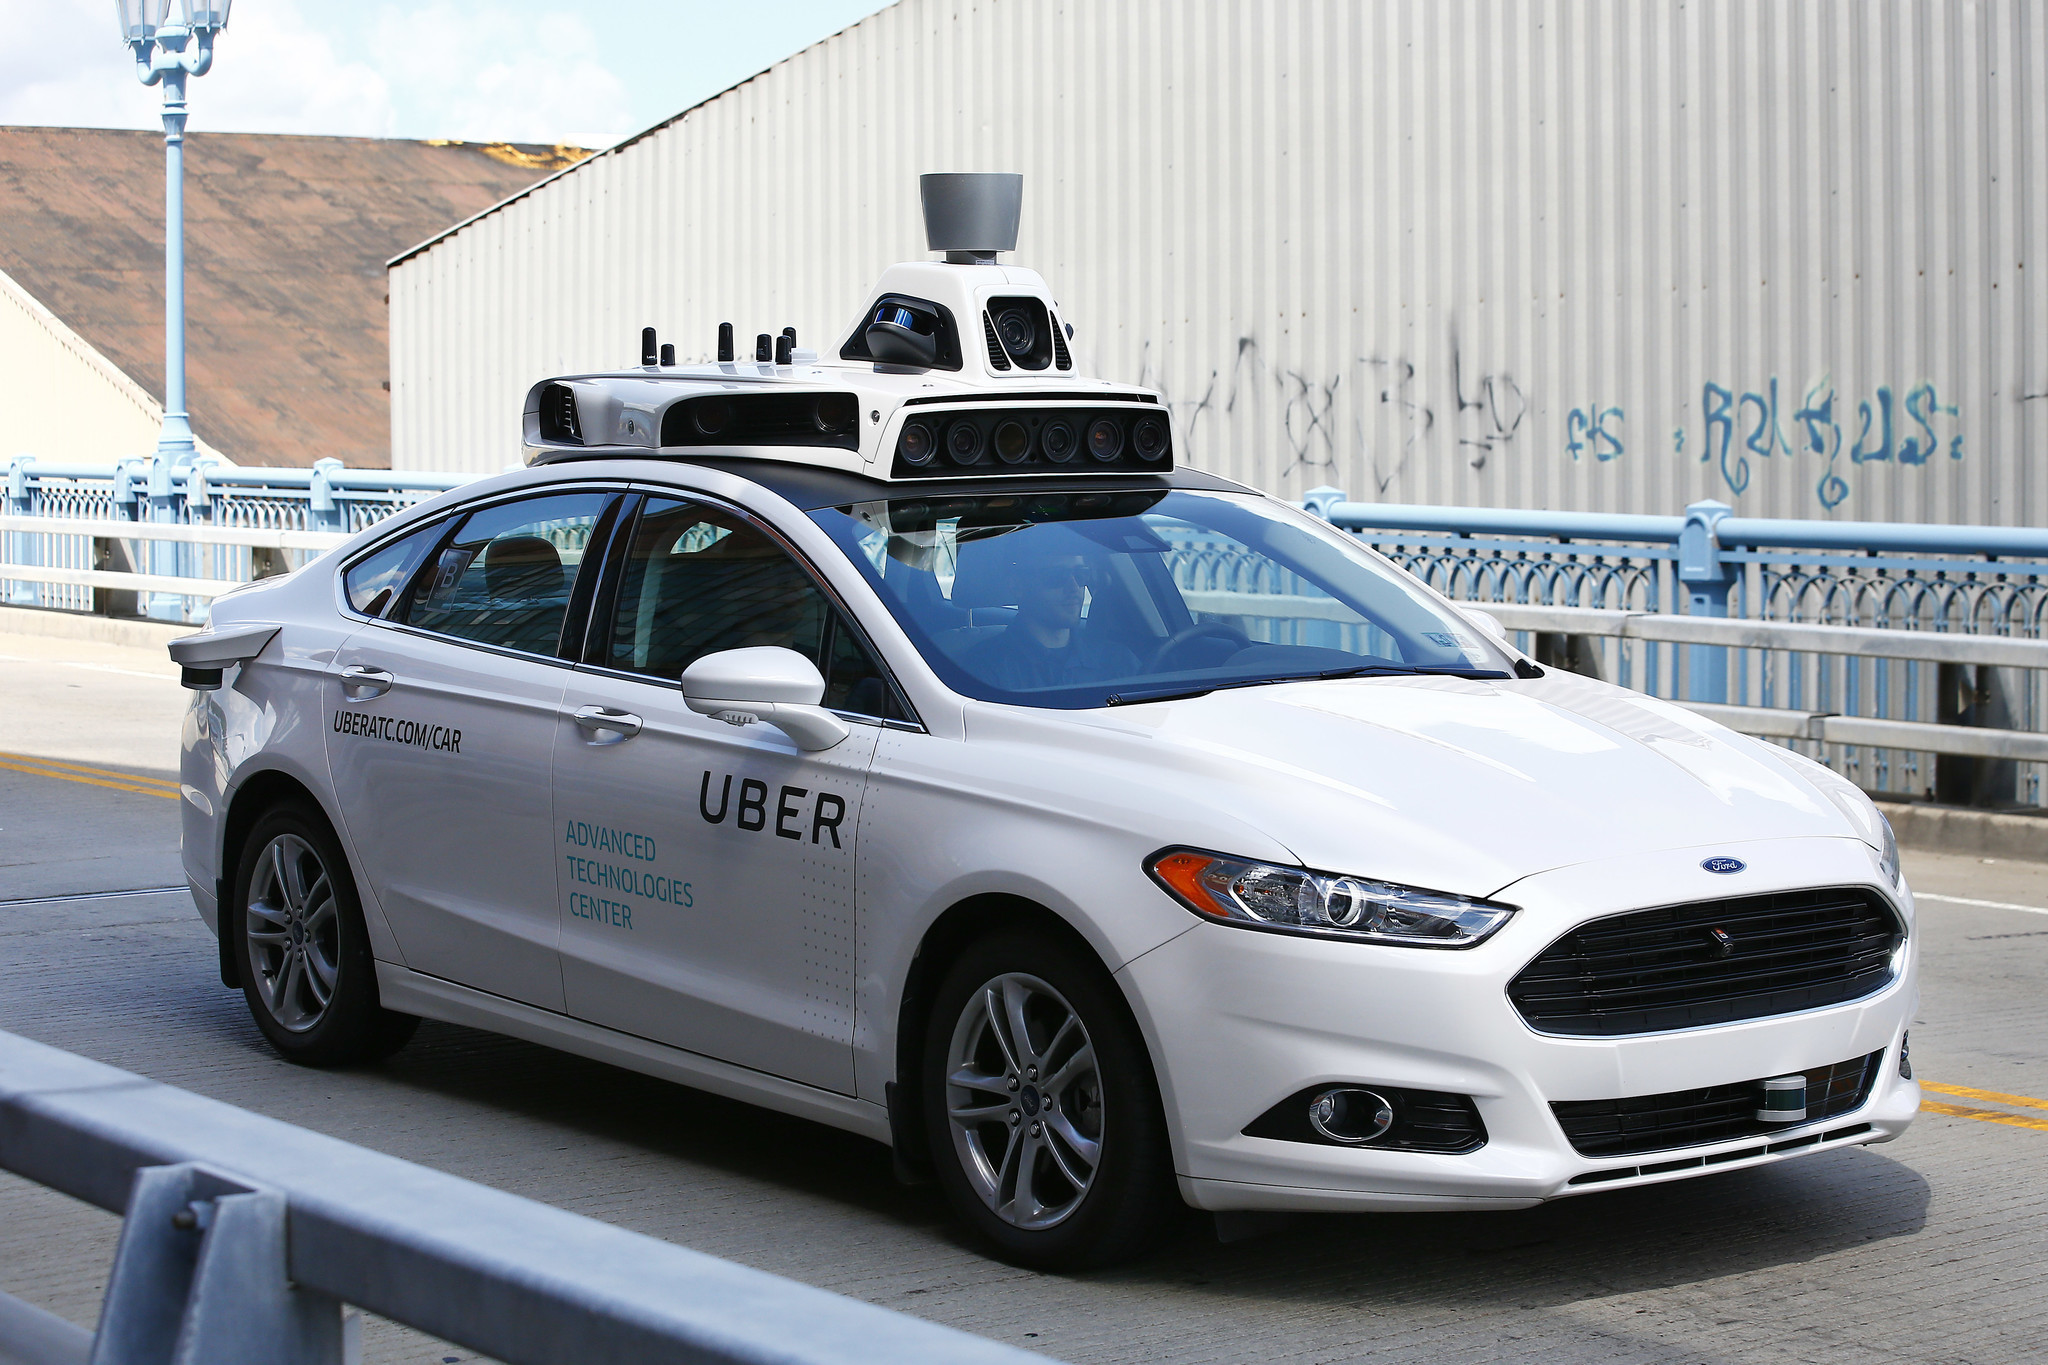 Uber Driverless Cars Is Happening